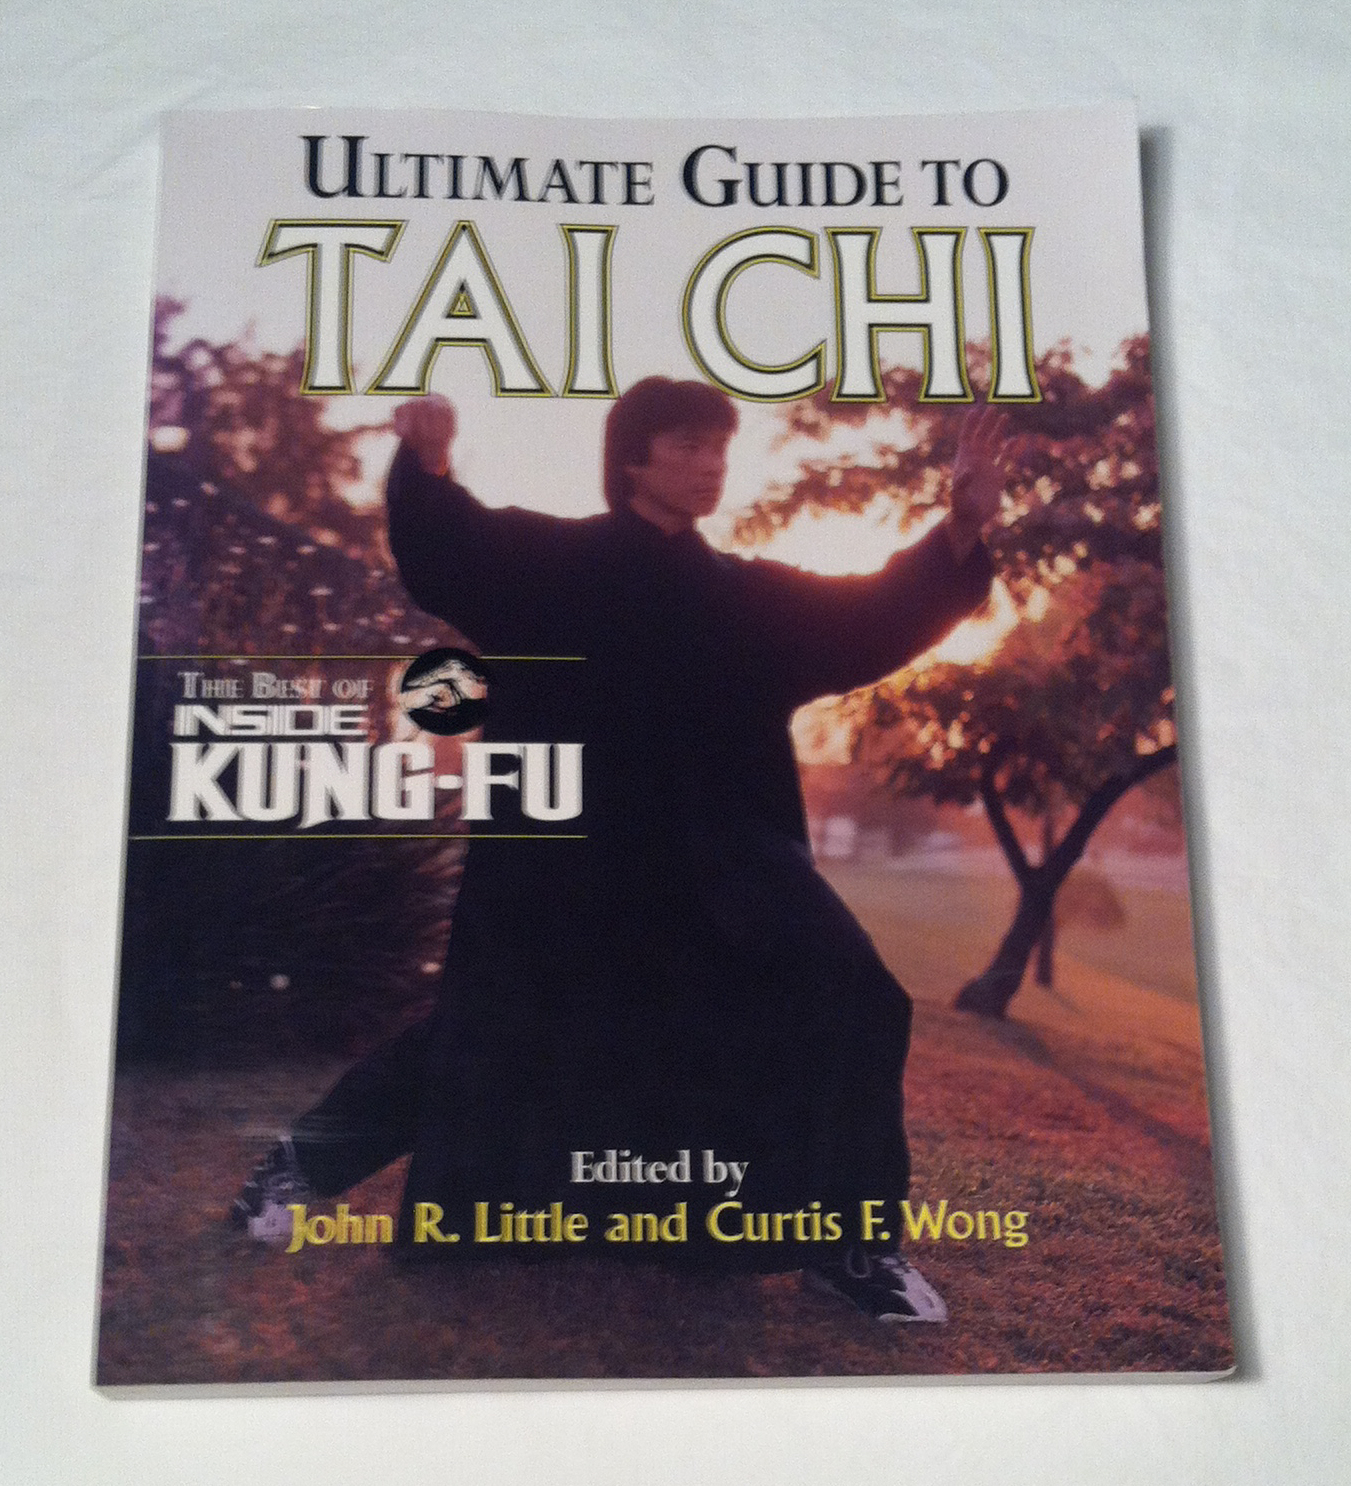 Primary image for Large softcover book Ultimate Guide To Tai Chi martial arts kung fu